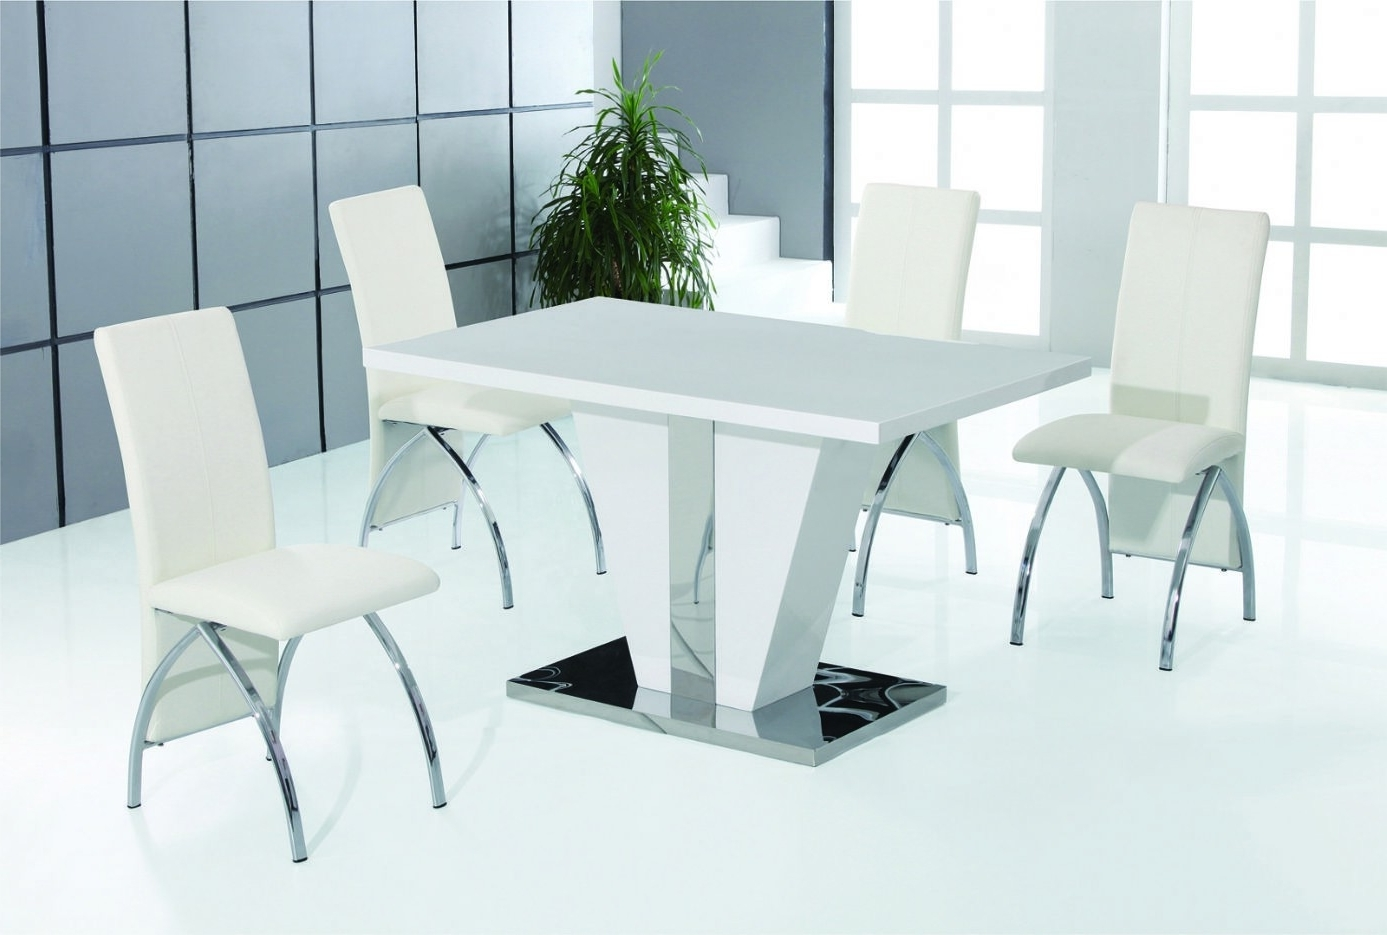 Delta White And Stainless Steel Dining Table Set In Current Hi Gloss Dining Tables Sets (Gallery 15 of 25)